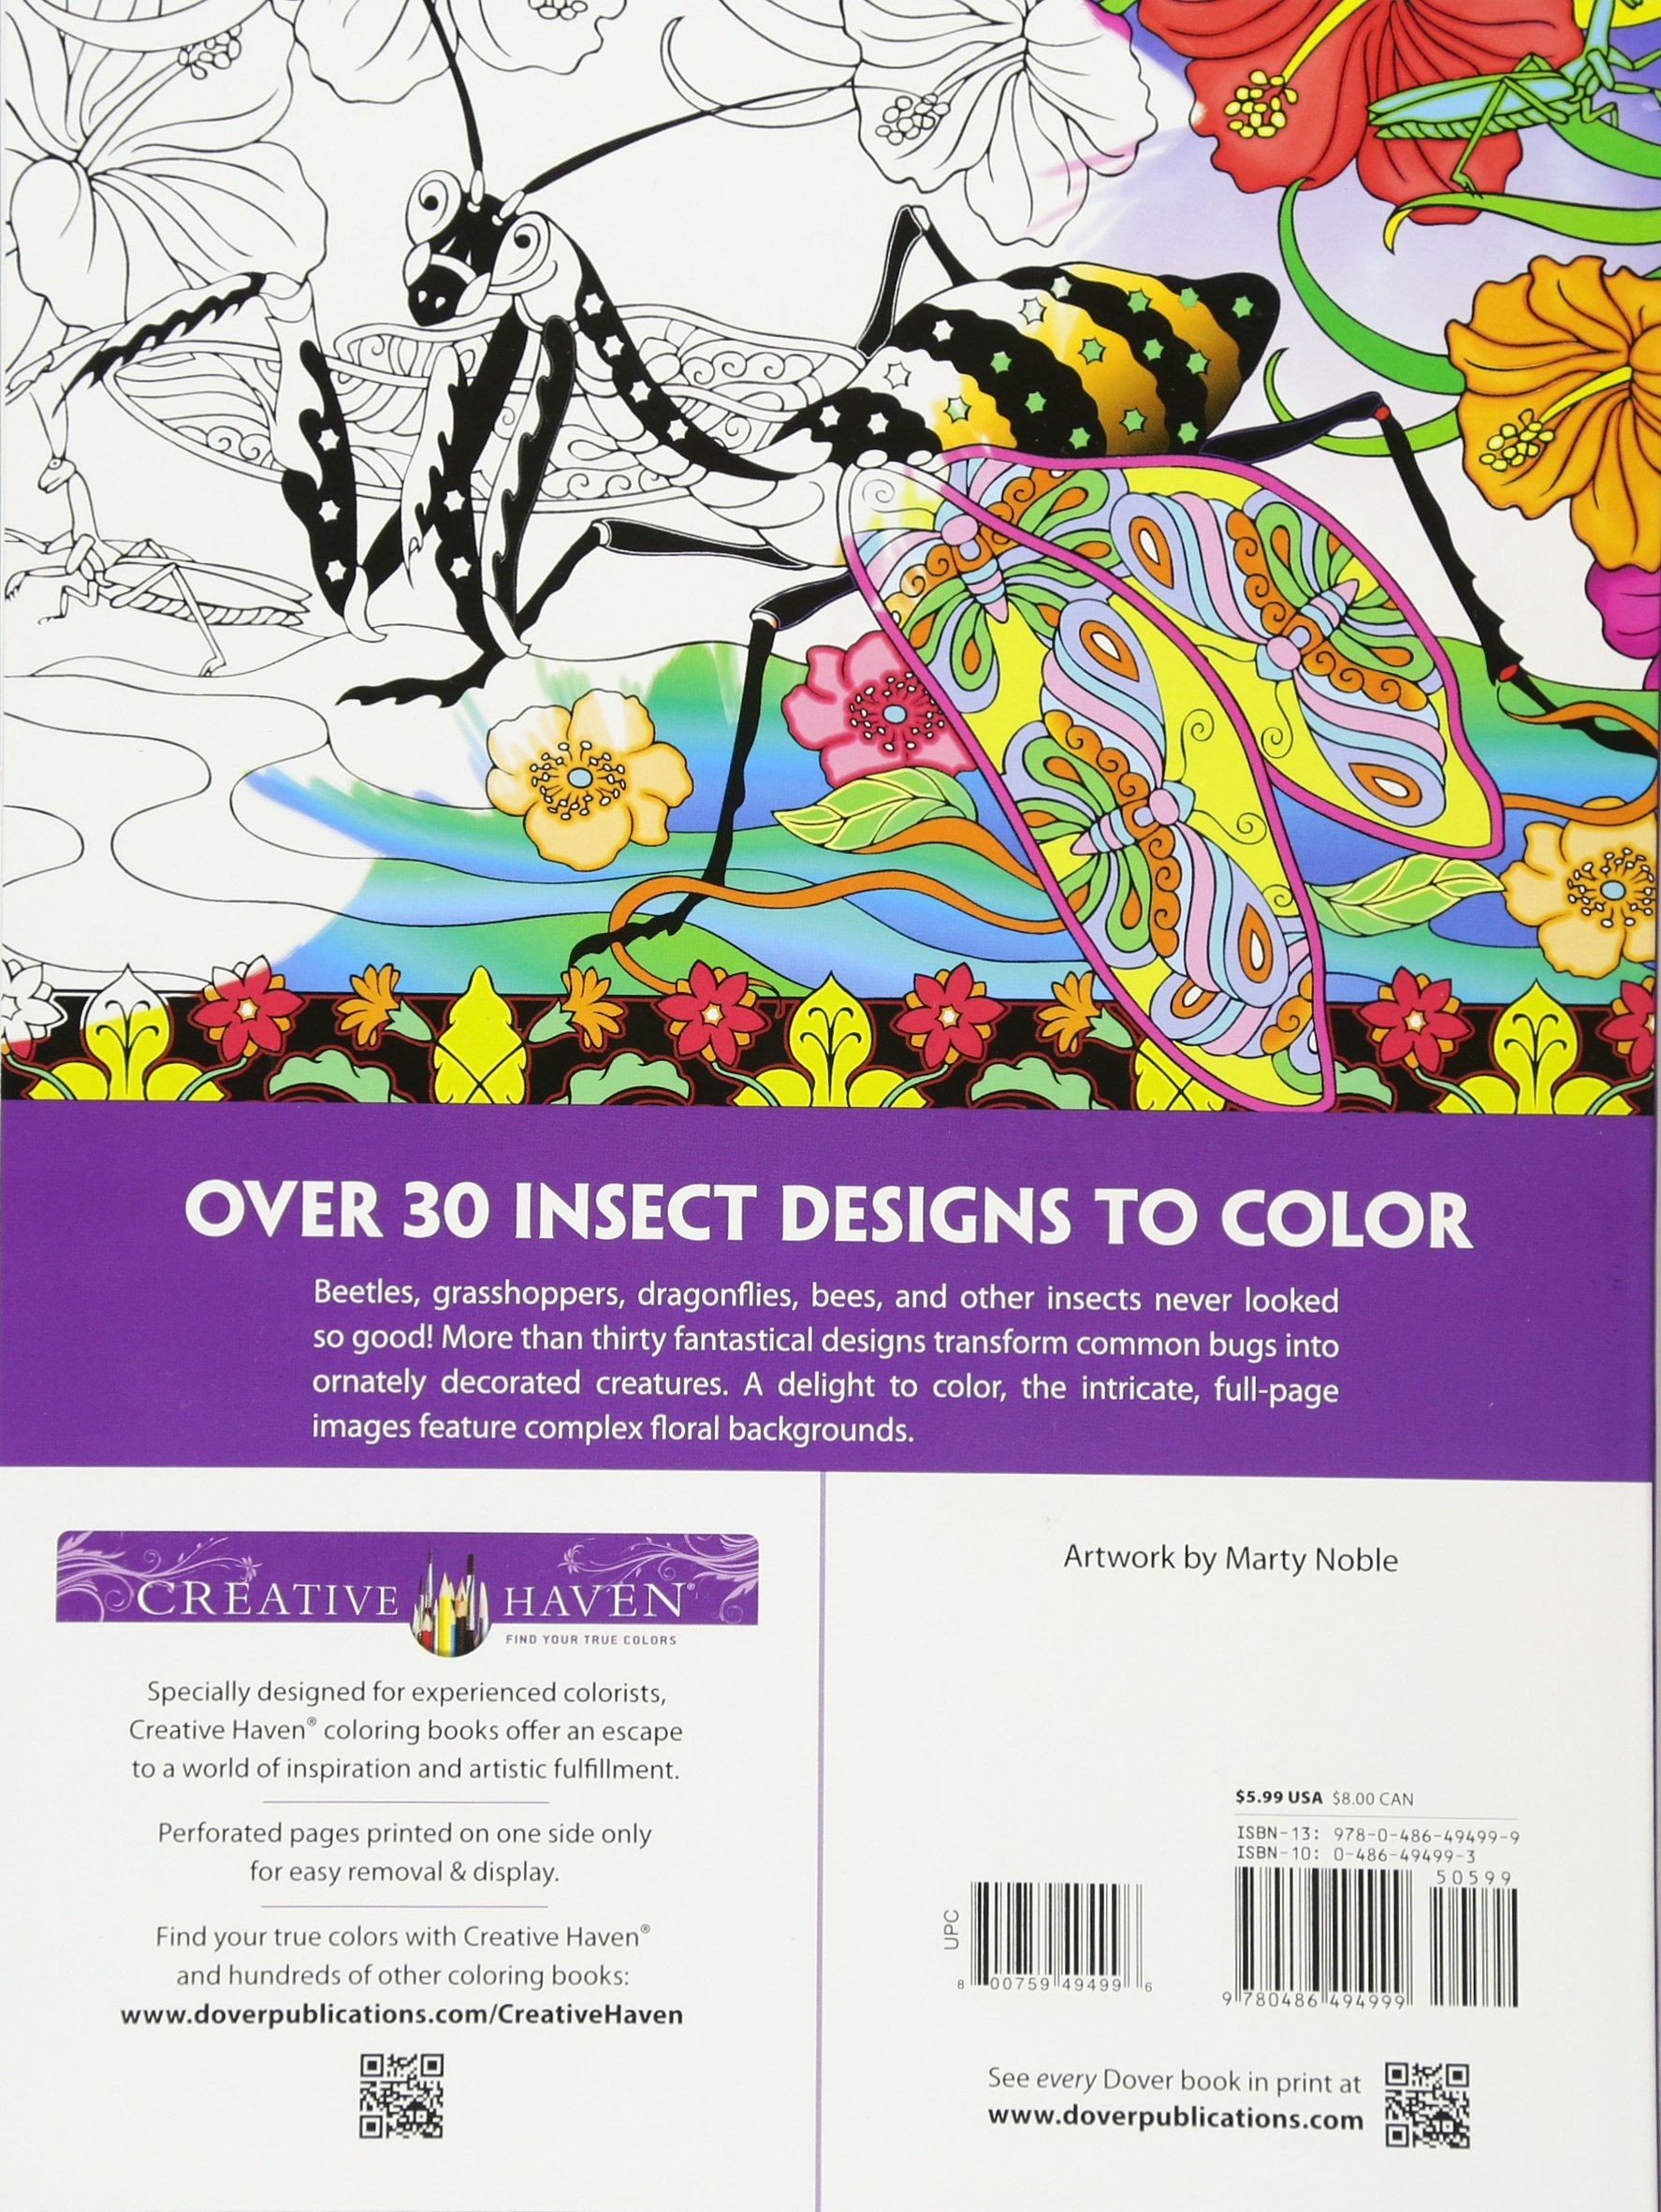 Amazon.com: Creative Haven Incredible Insect Designs Coloring Book ...